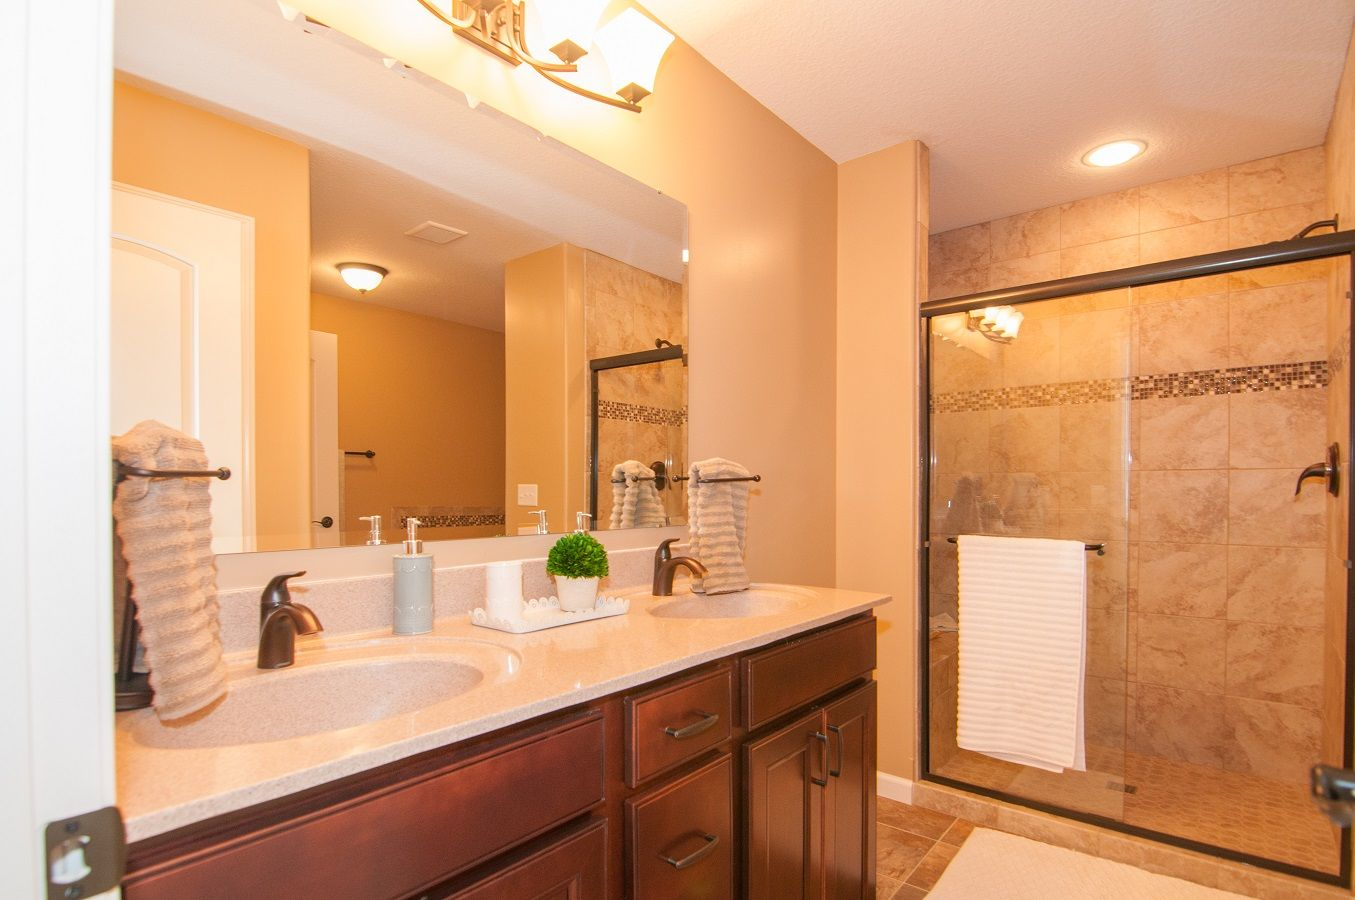 Bathroom featured in the Denali By D.R. Horton in Fort Wayne, IN